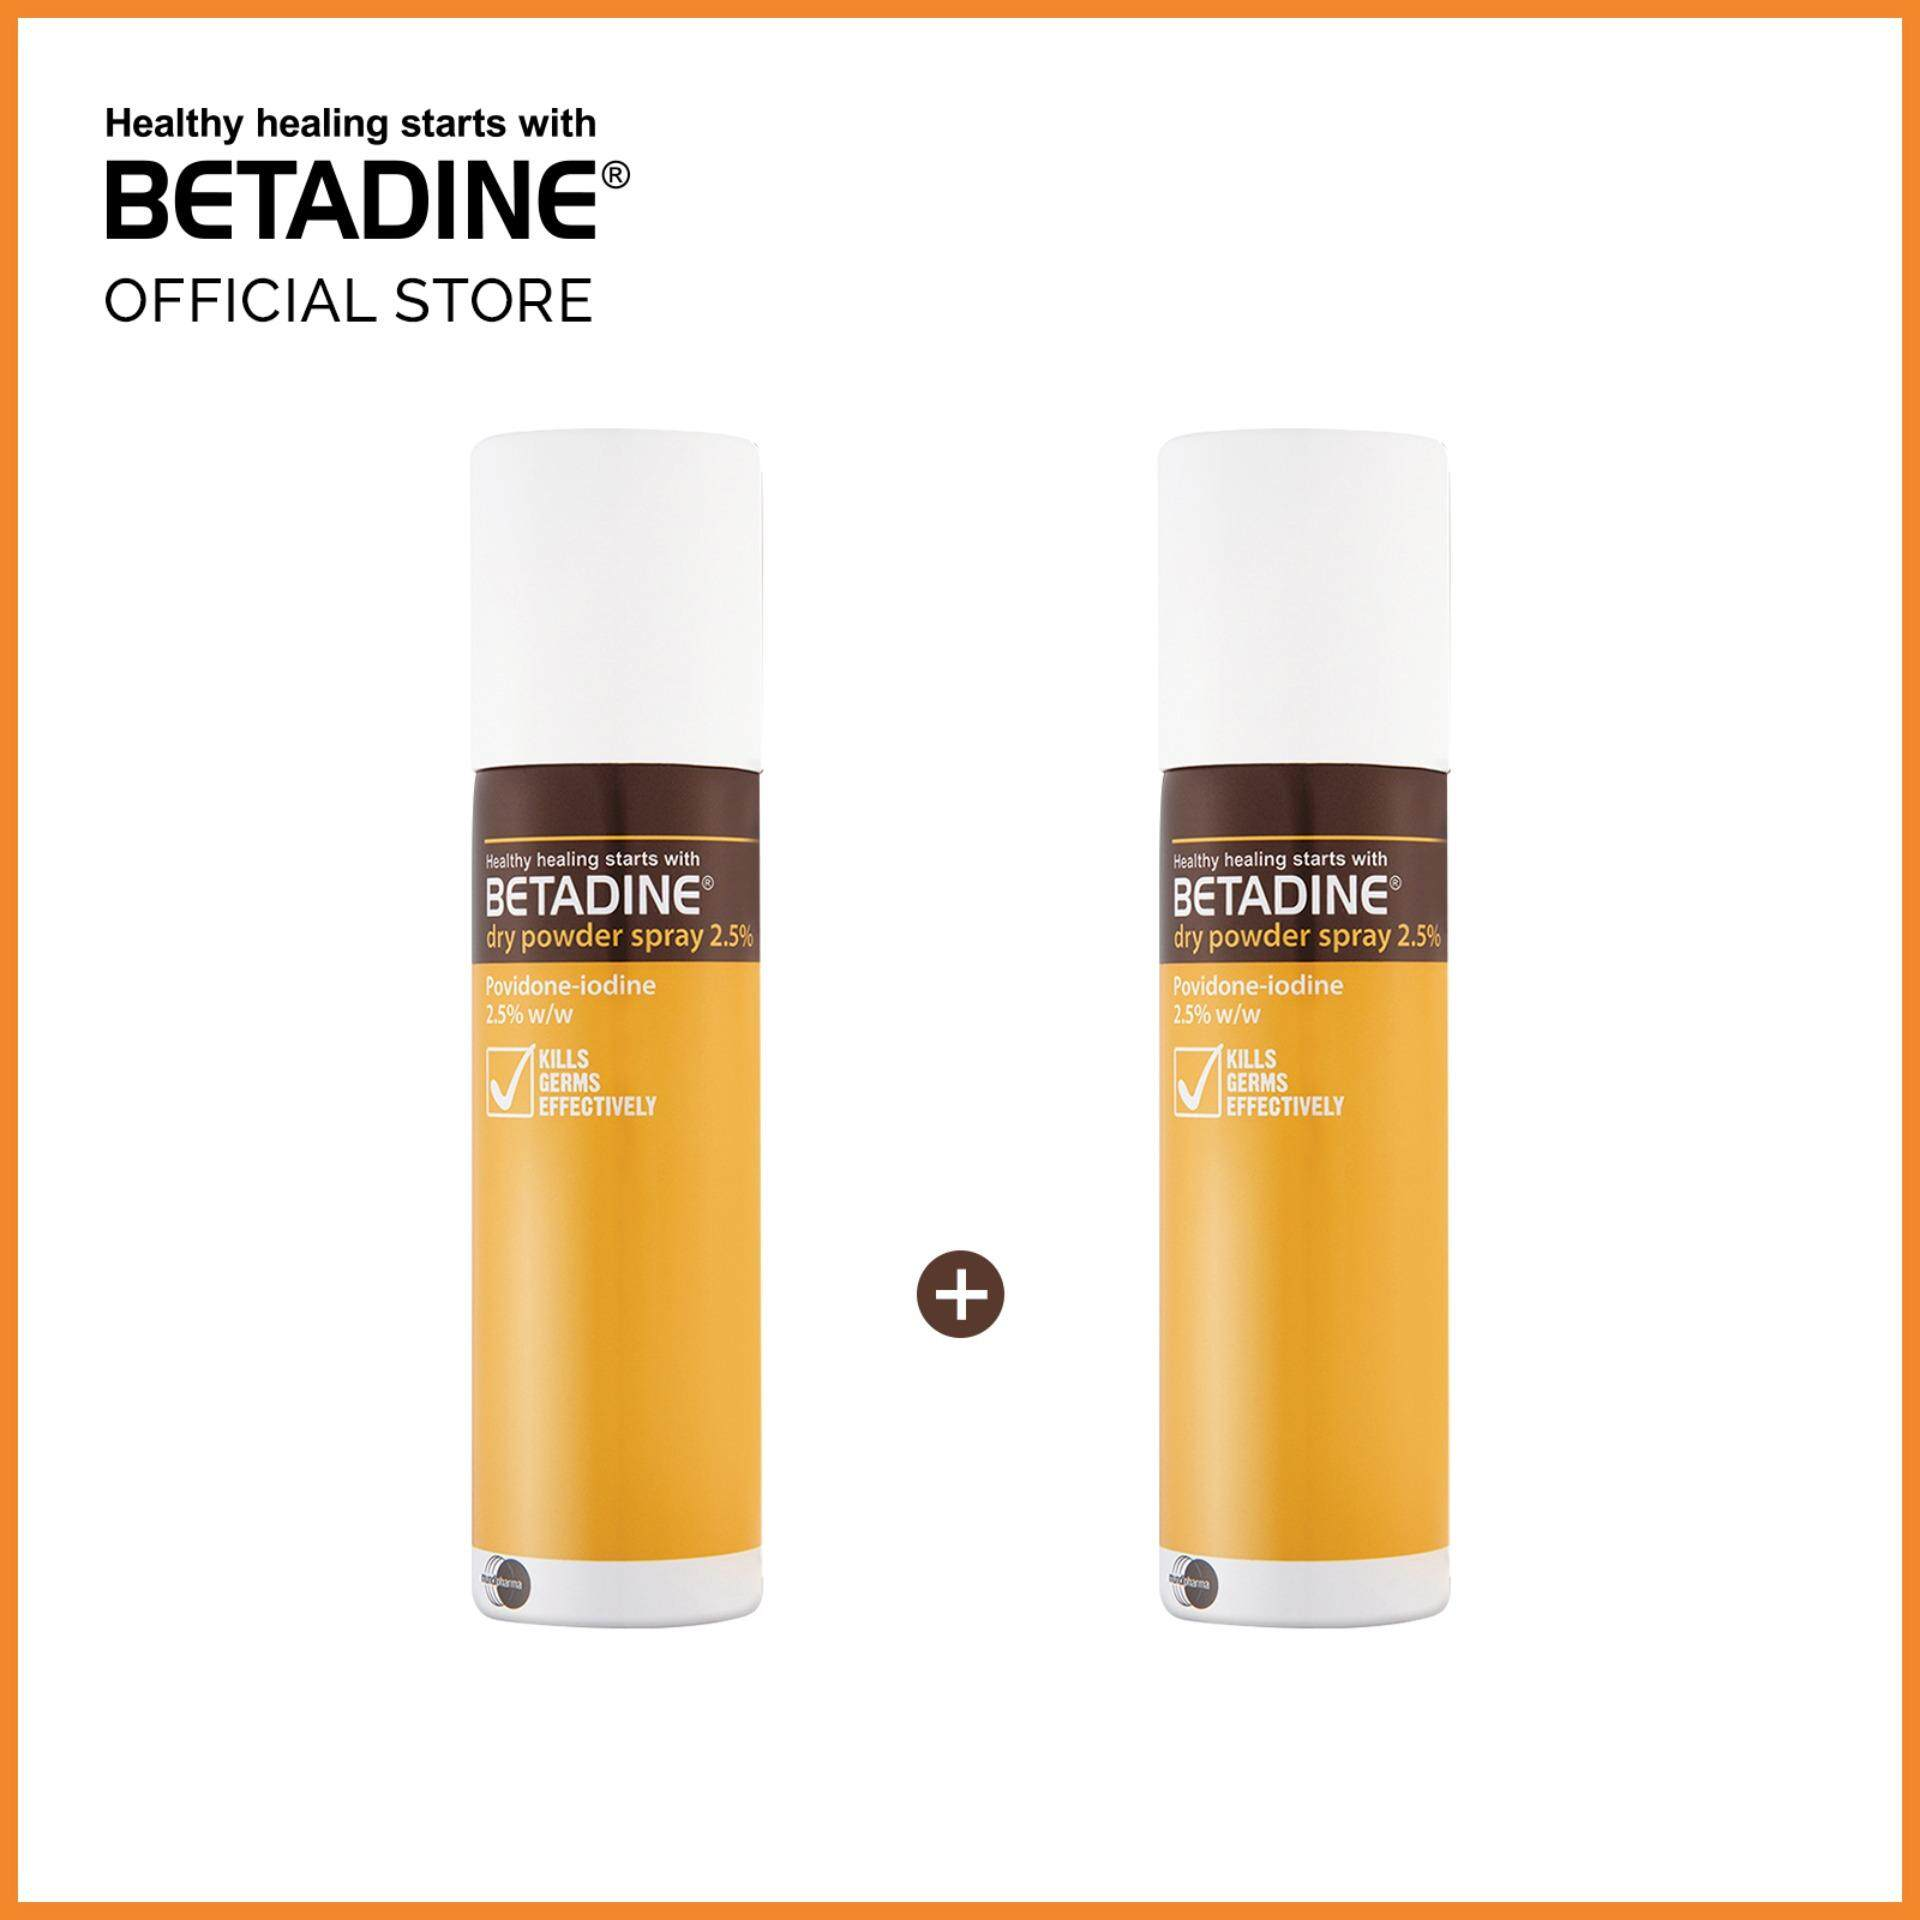 Betadine Dry Powder Spray 55g x 2